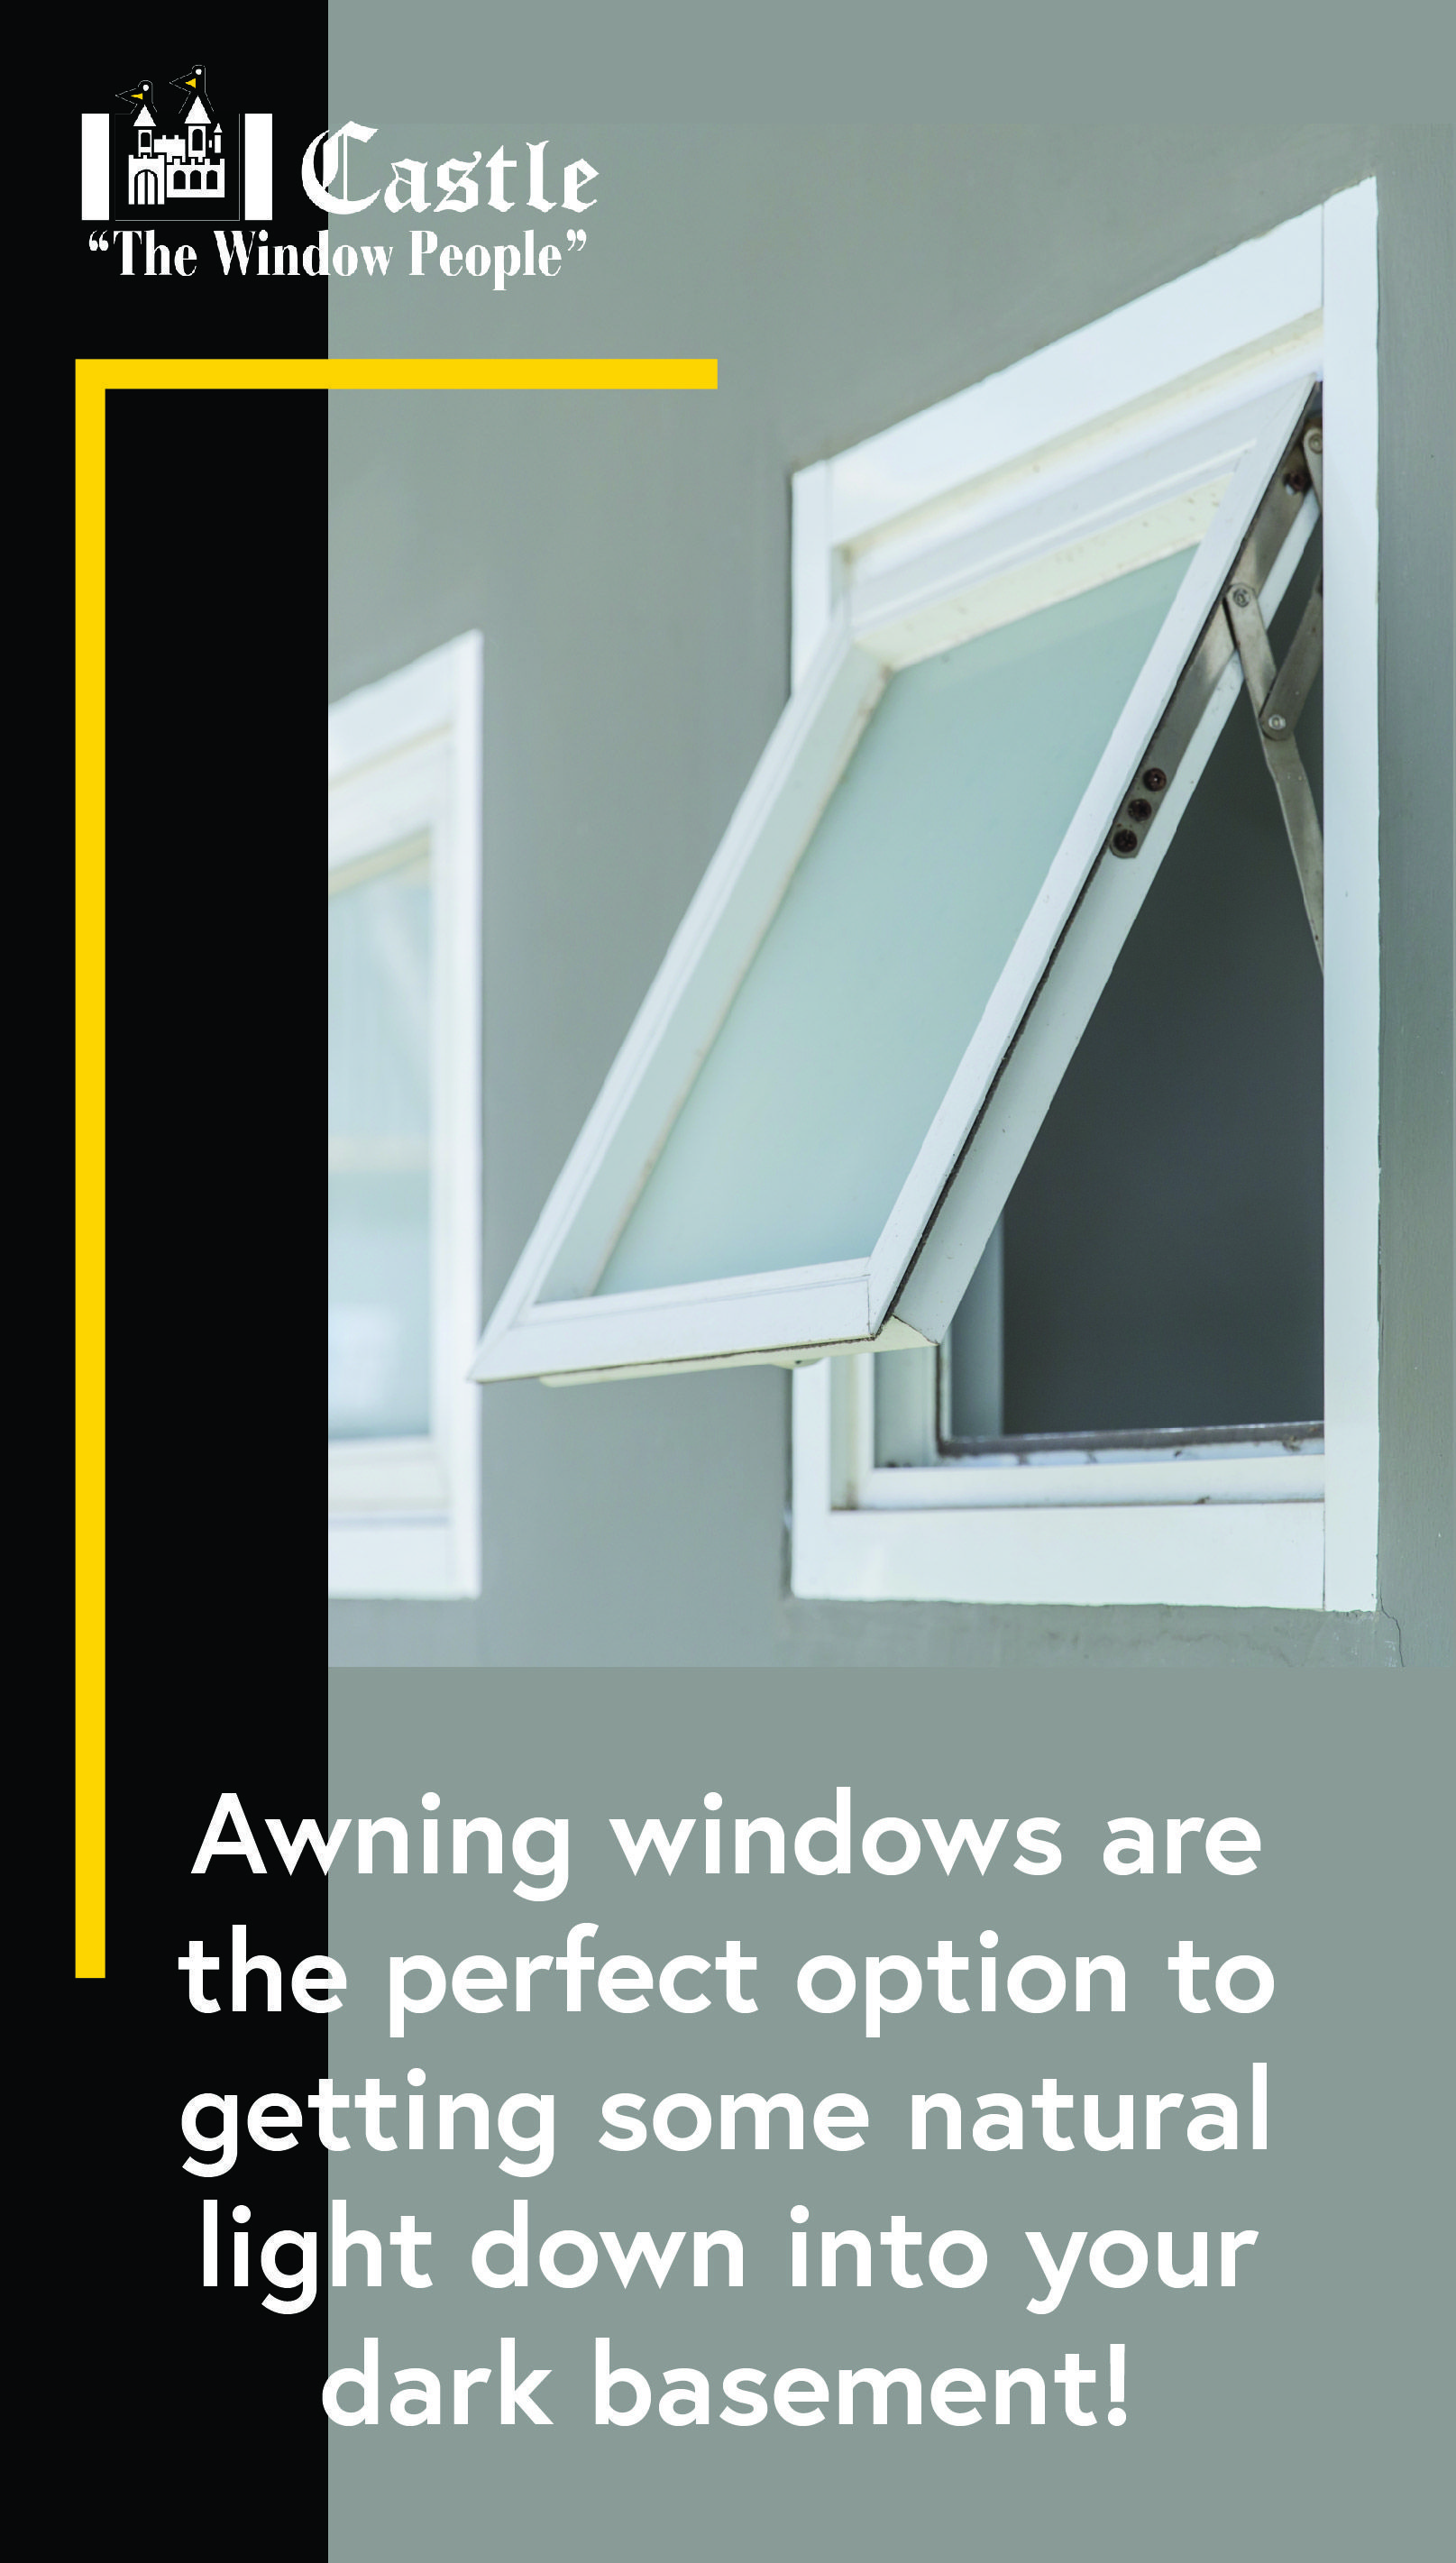 Awning Windows Are The Perfect Option To Getting Some Natural Light Down Into Your Dark Basement Solution Solutions Awning Windows Downlights Dark Basement